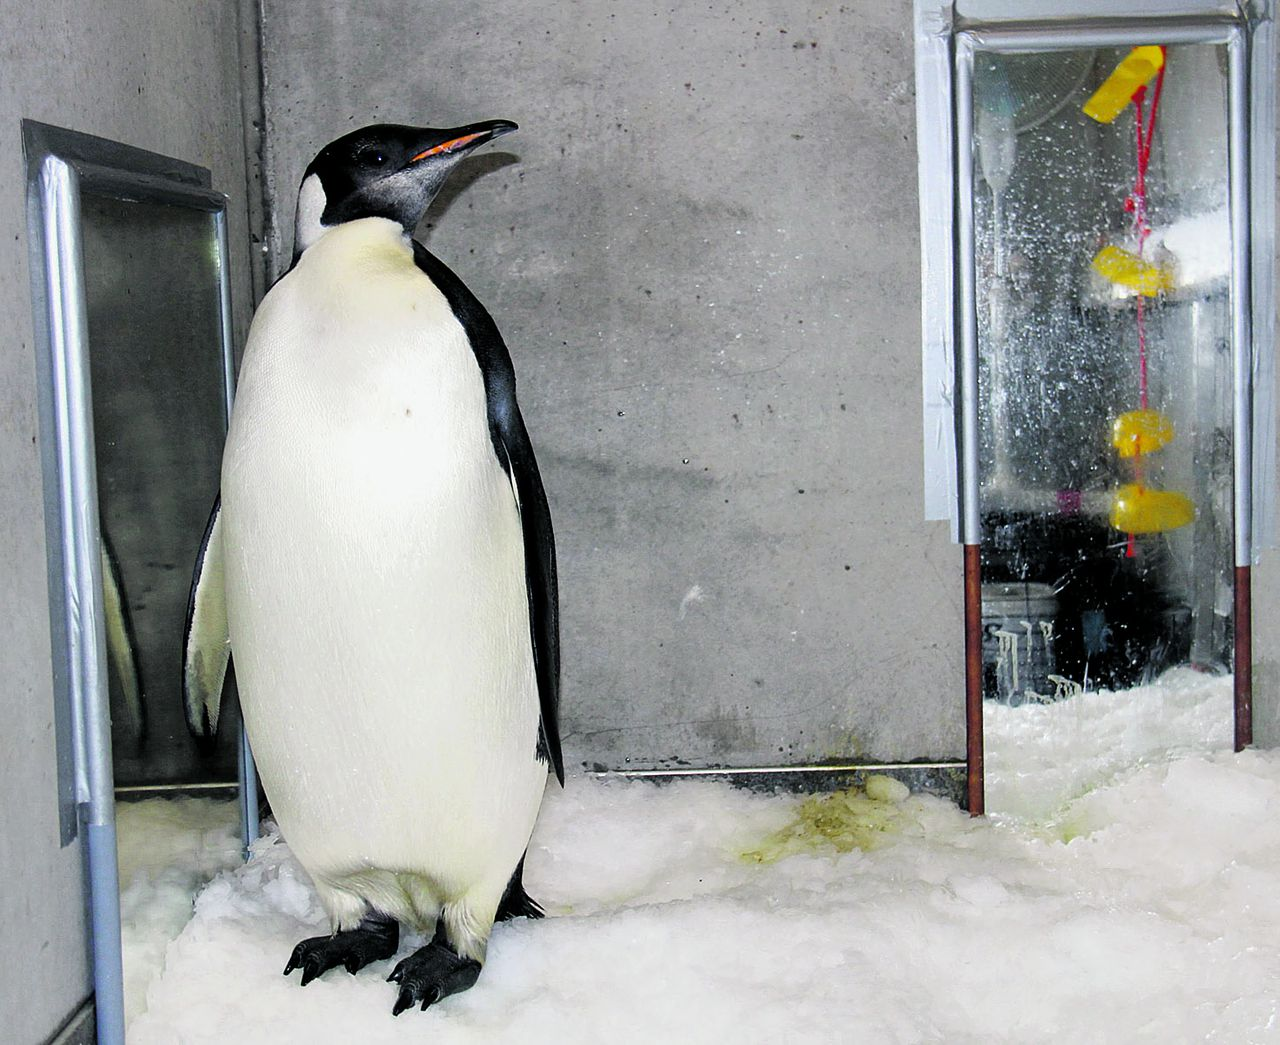 """'Uitstekend ambassadeur'. Foto AP In this Aug. 28, 2011 photo released by China's Xinhua News Agency, emperor penguin """"Happy Feet"""" is seen in his room at Wellington Zoo's hospital, New Zealand. The emperor penguin has been booked onto a research vessel scheduled to leave the country Aug. 29. (AP Photo/Xinhua, Liu Jieqiu) NO SALES"""